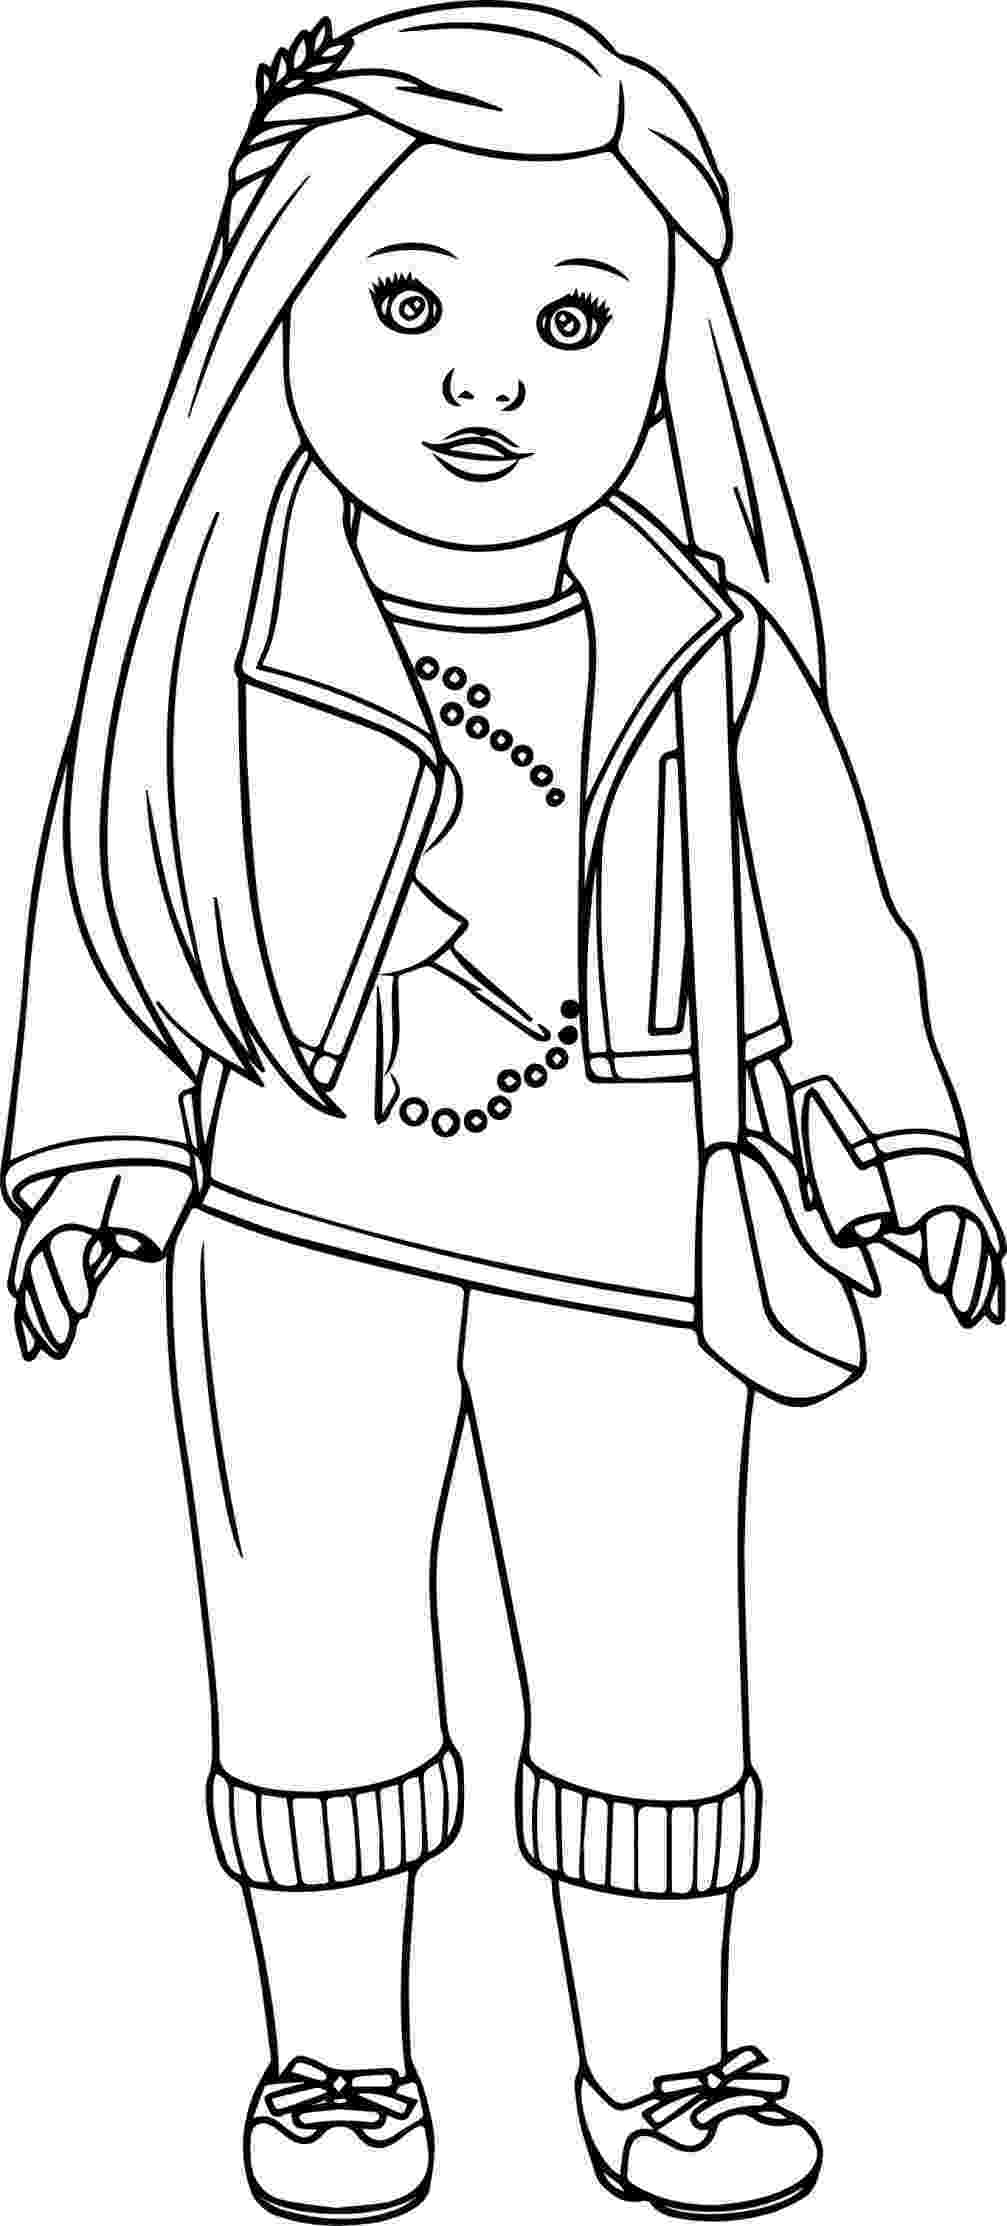 american girl doll free coloring pages american girl coloring pages best coloring pages for kids girl doll free american pages coloring